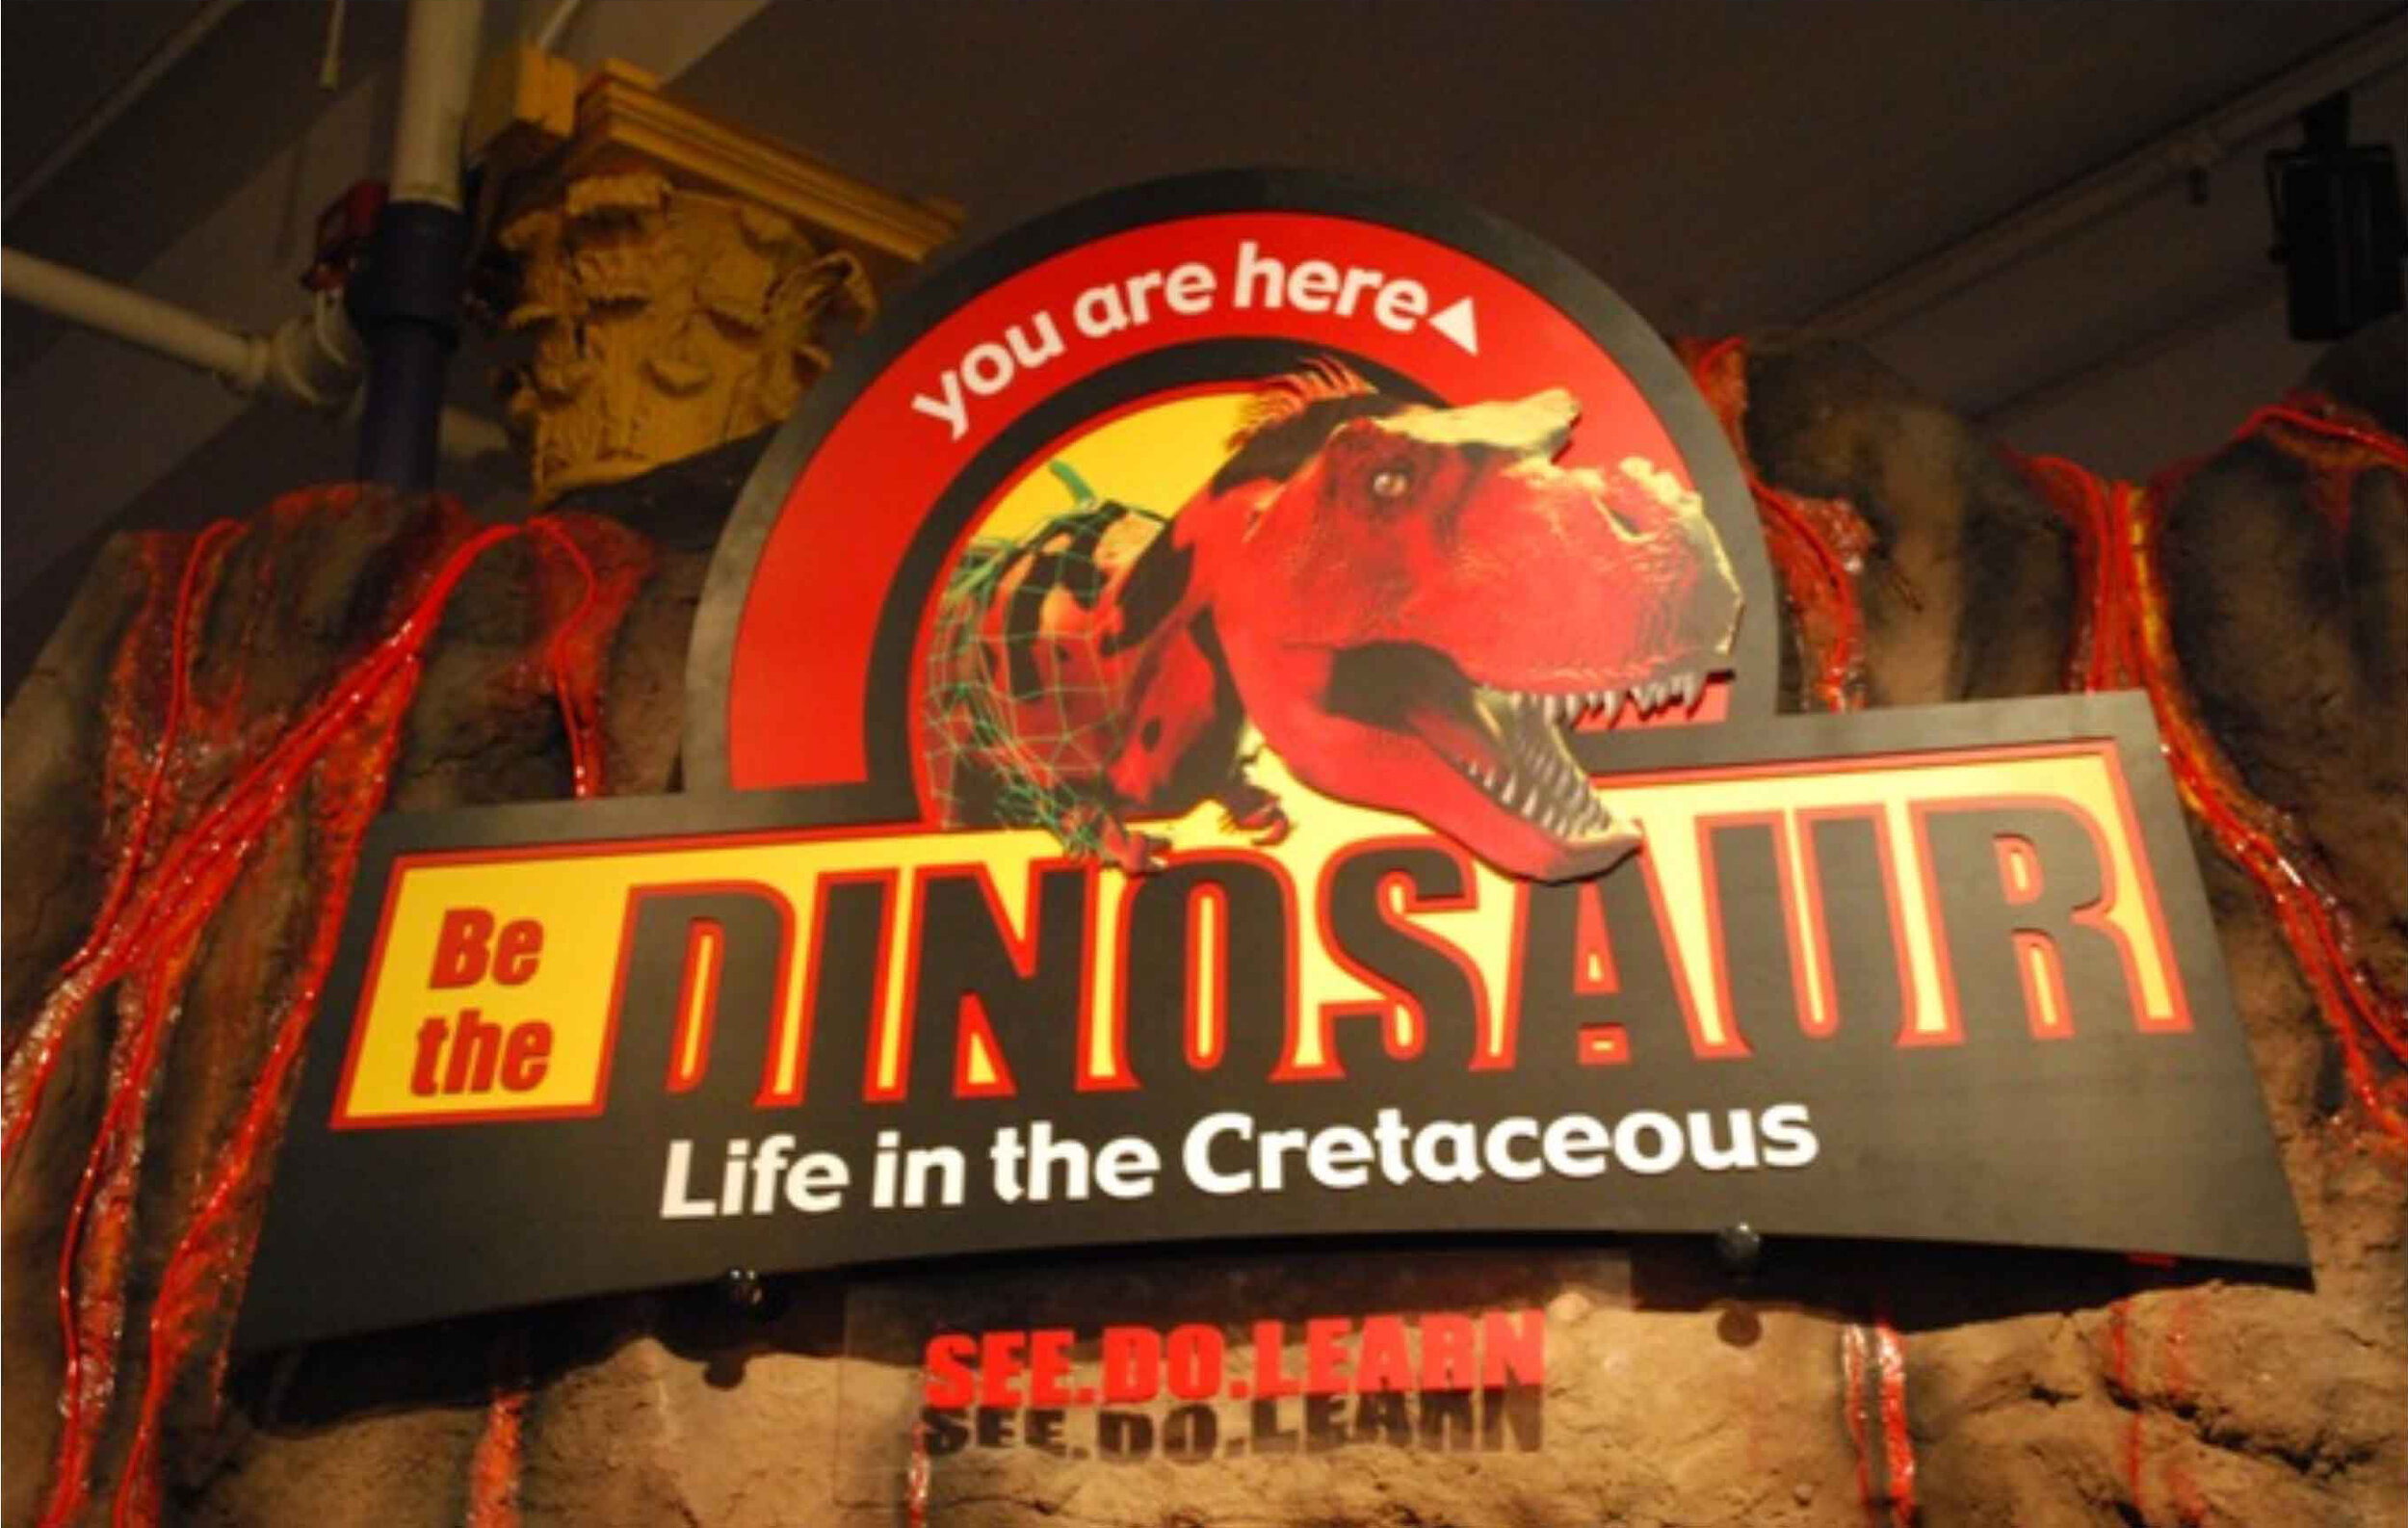 Be the Dinosaur - A scavenger hunt, played as a virtual game combined with a scavenger hunt through the physical exhibit, through the most realistic simulation of a Cretaceous ecosystem ever produced